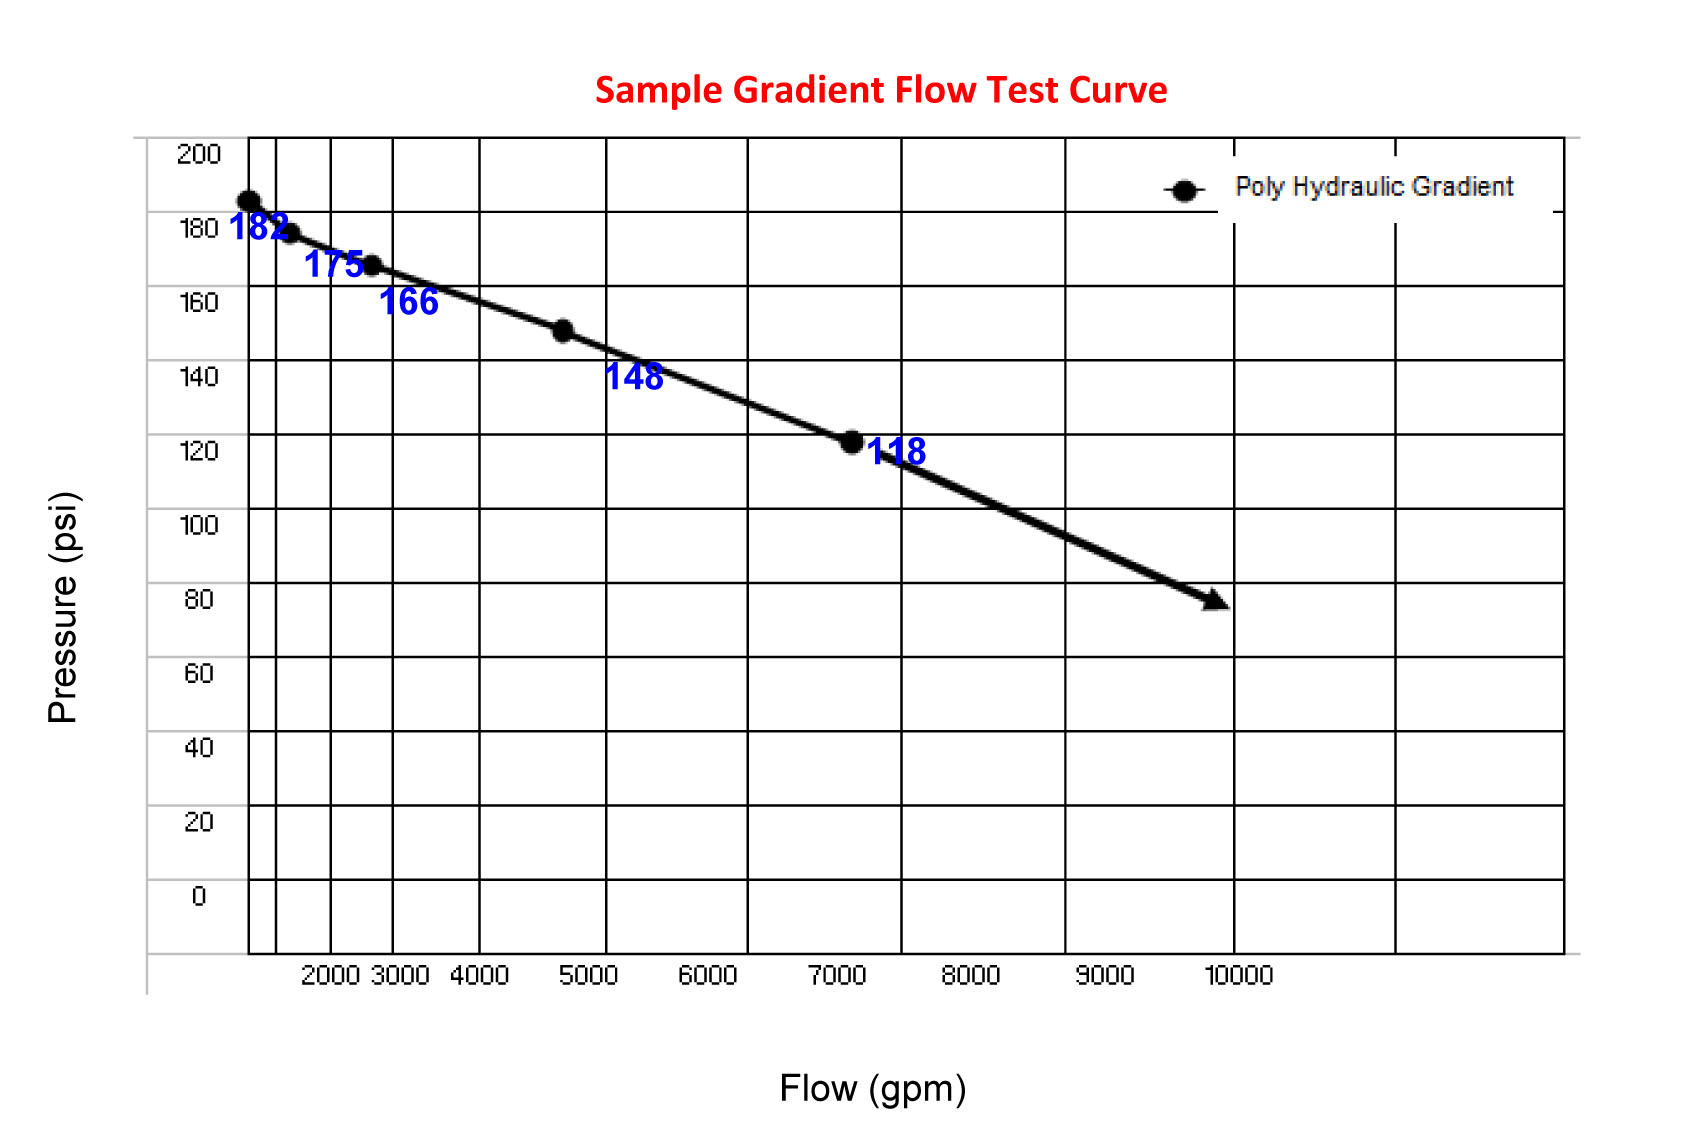 Sample Gradient Flow Test Curve